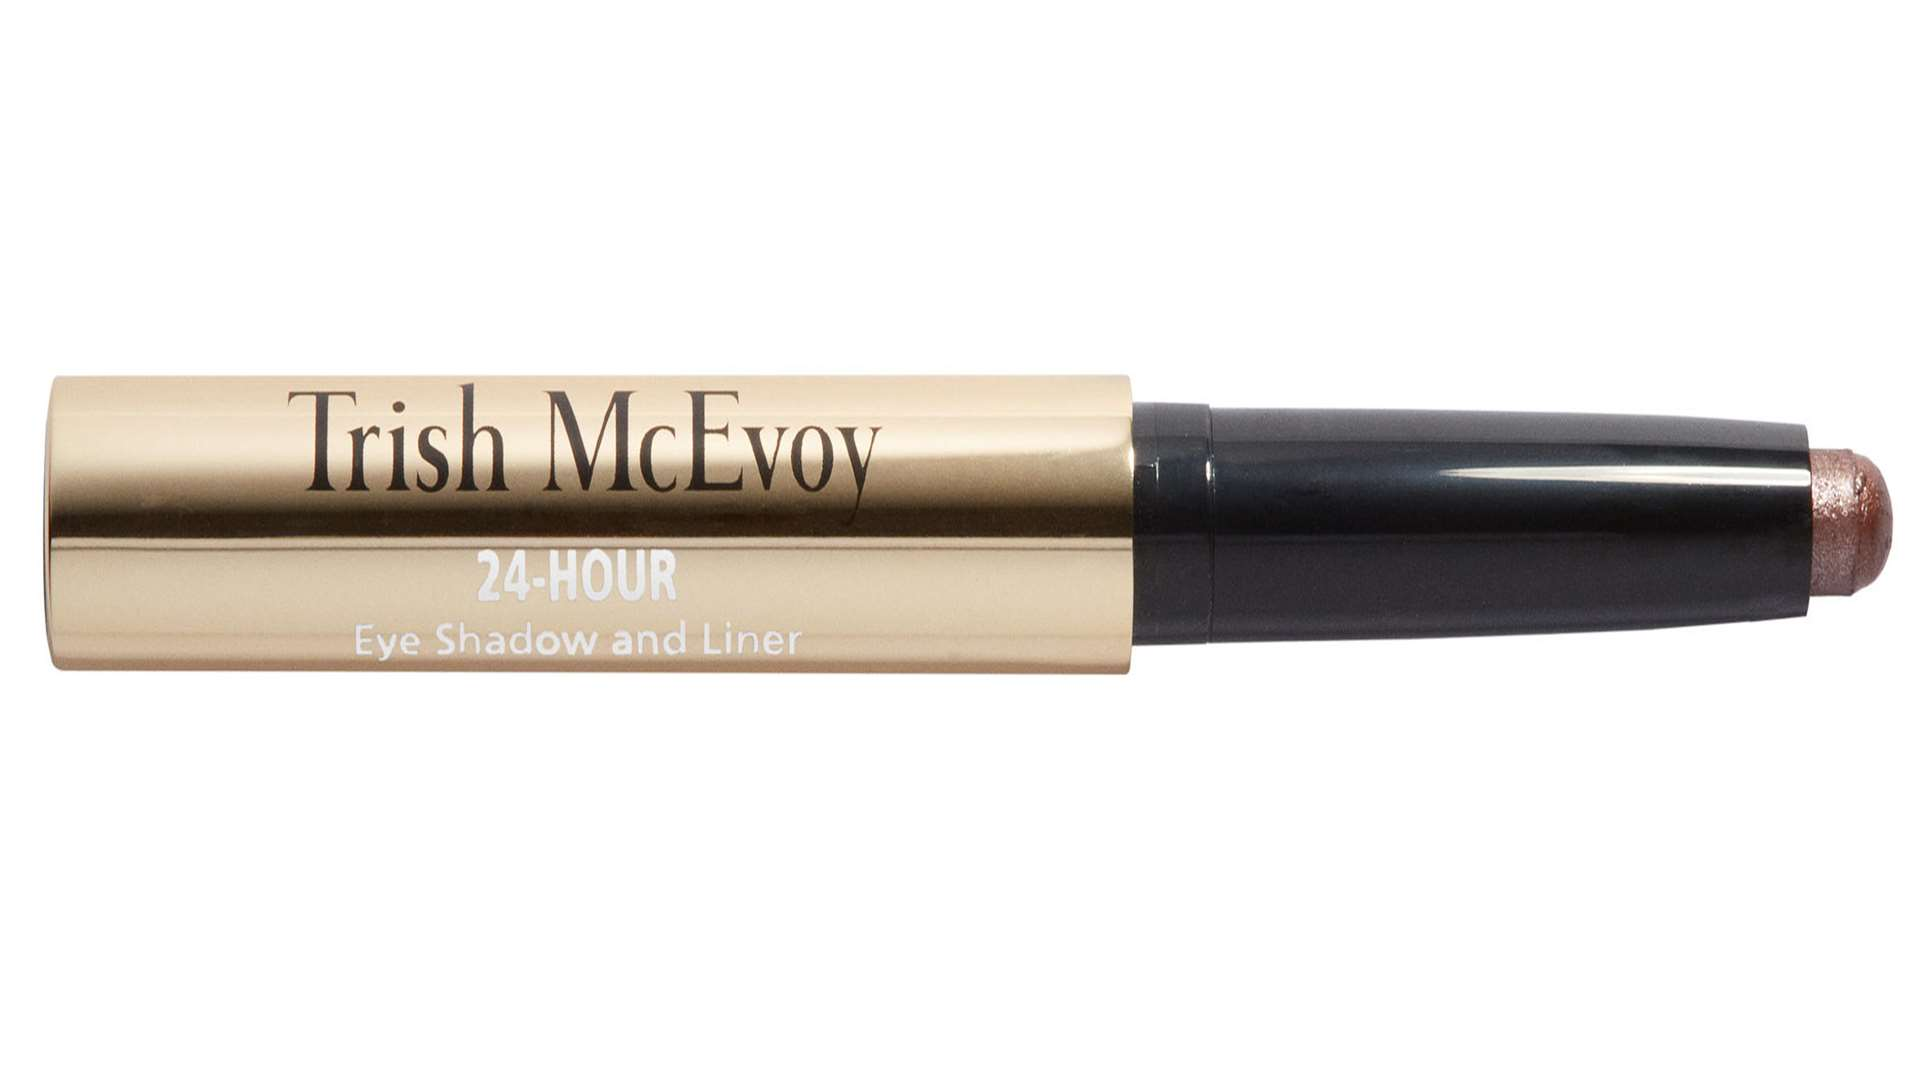 Trish McEvoy 24 Hour Eyeshadow and Liner